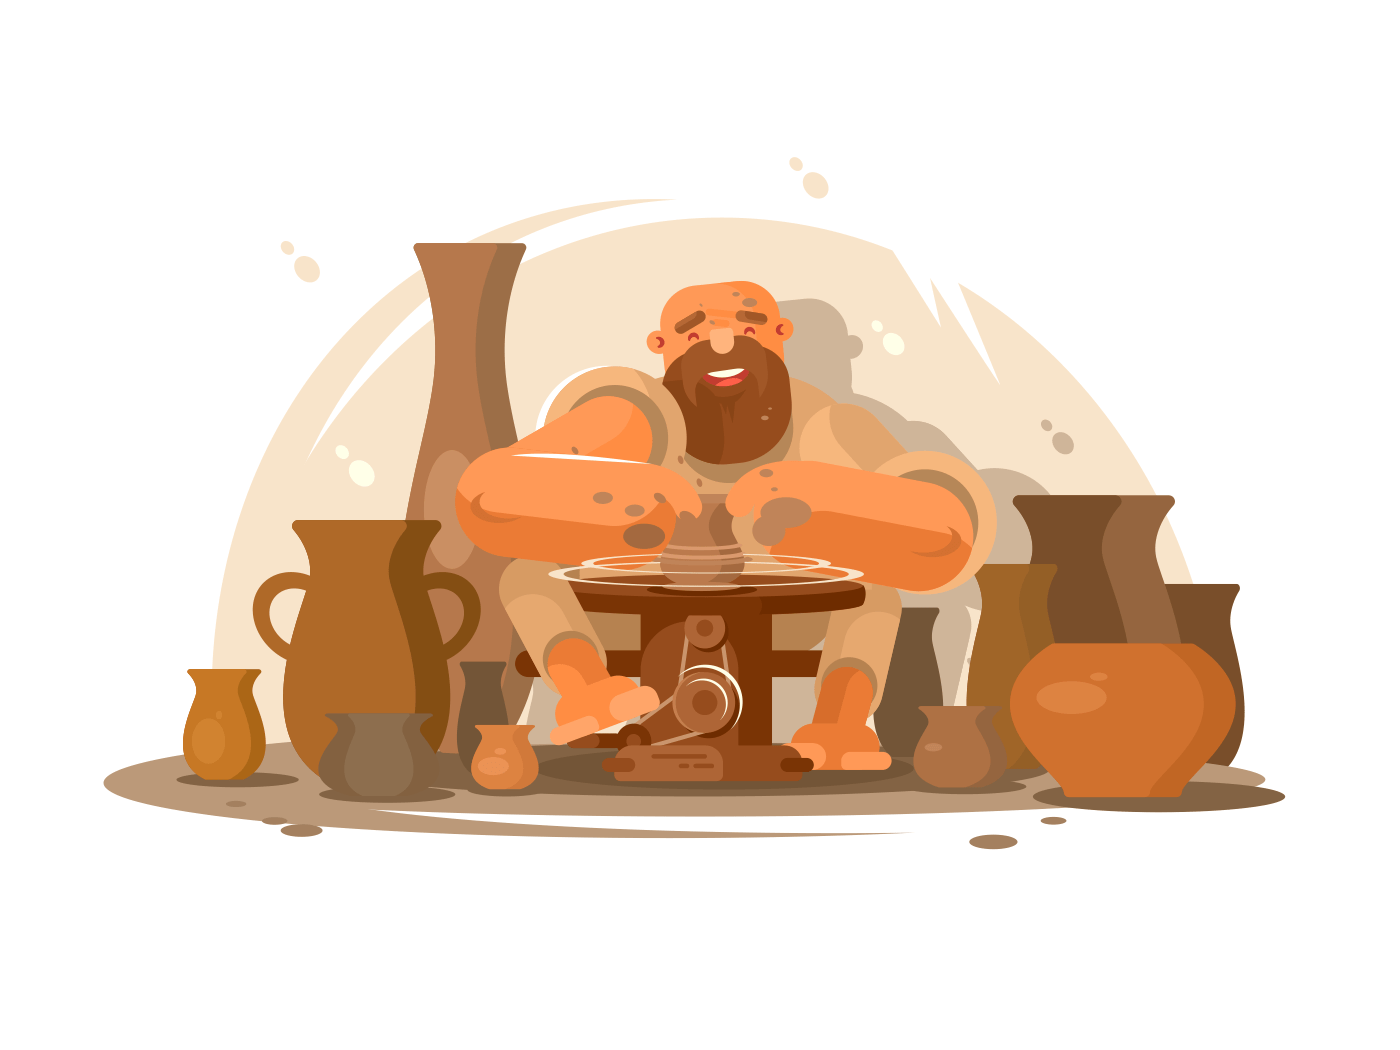 Potter bearded man illustration